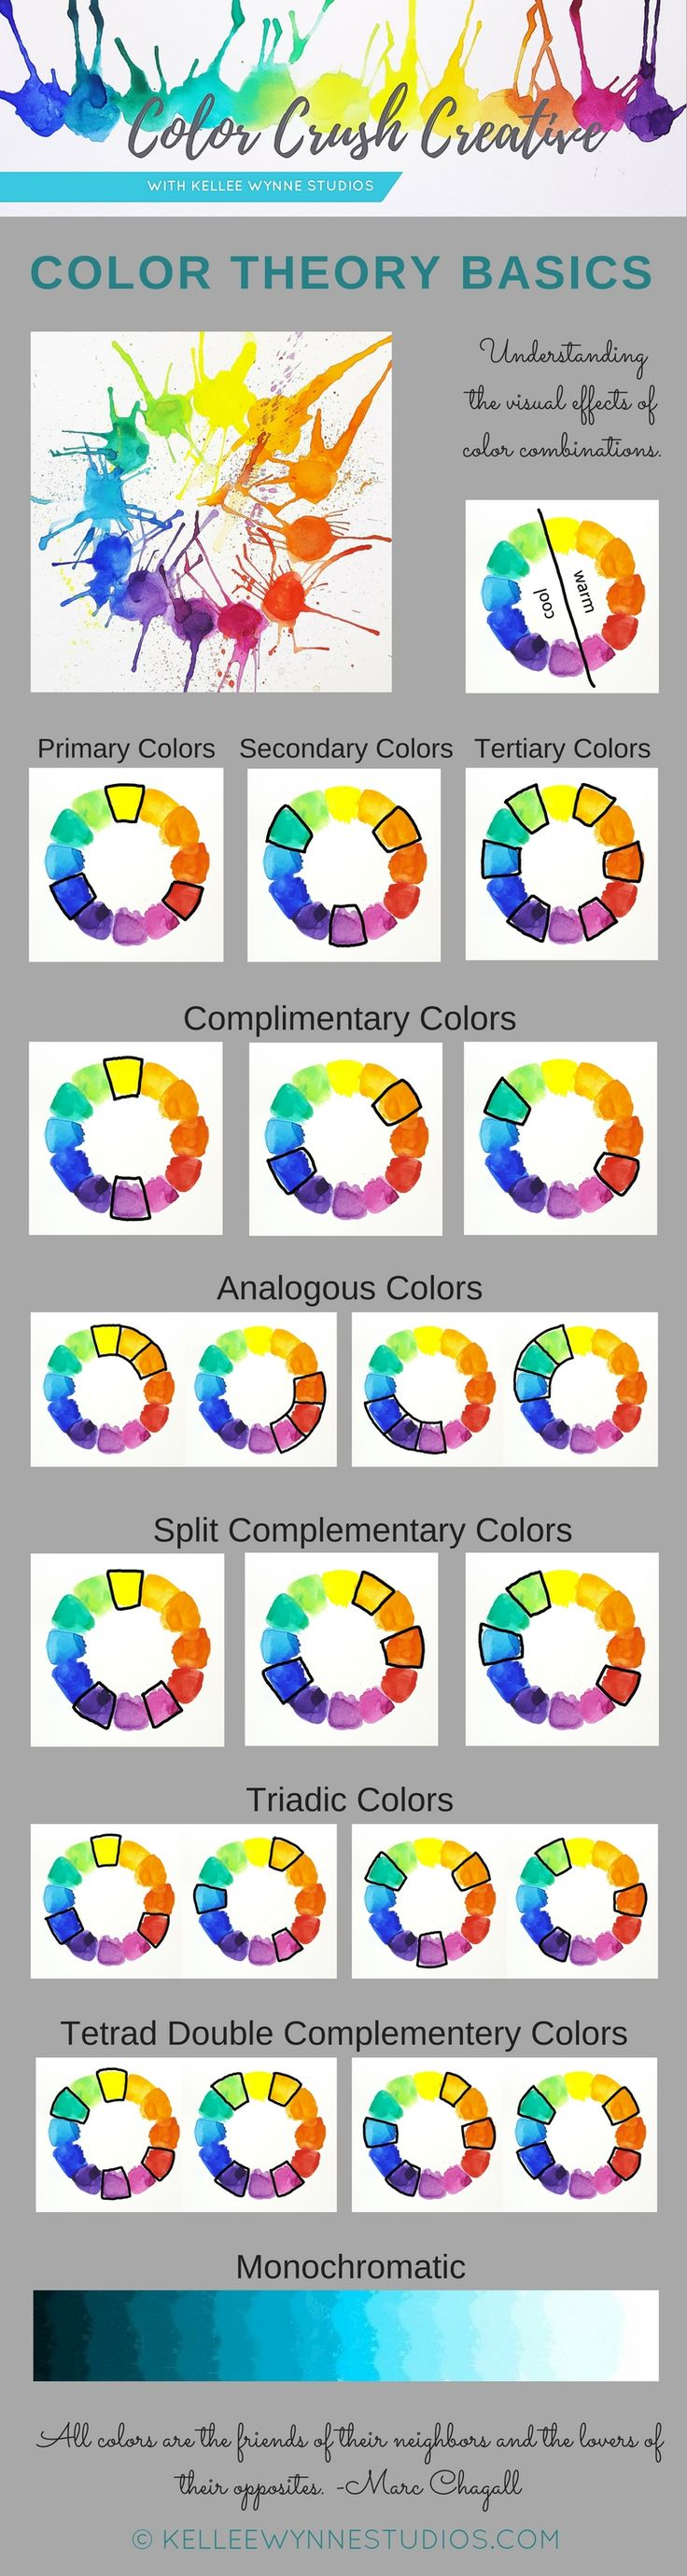 The science, history and art behind color is fascinating. It's a subject  that never bores me, in fact I have dozens of books just on color alone. I  could ramble for ages, but I'm going to assume that you just want the facts  today. Color Theory is still an evolving idea of how we use, see and r